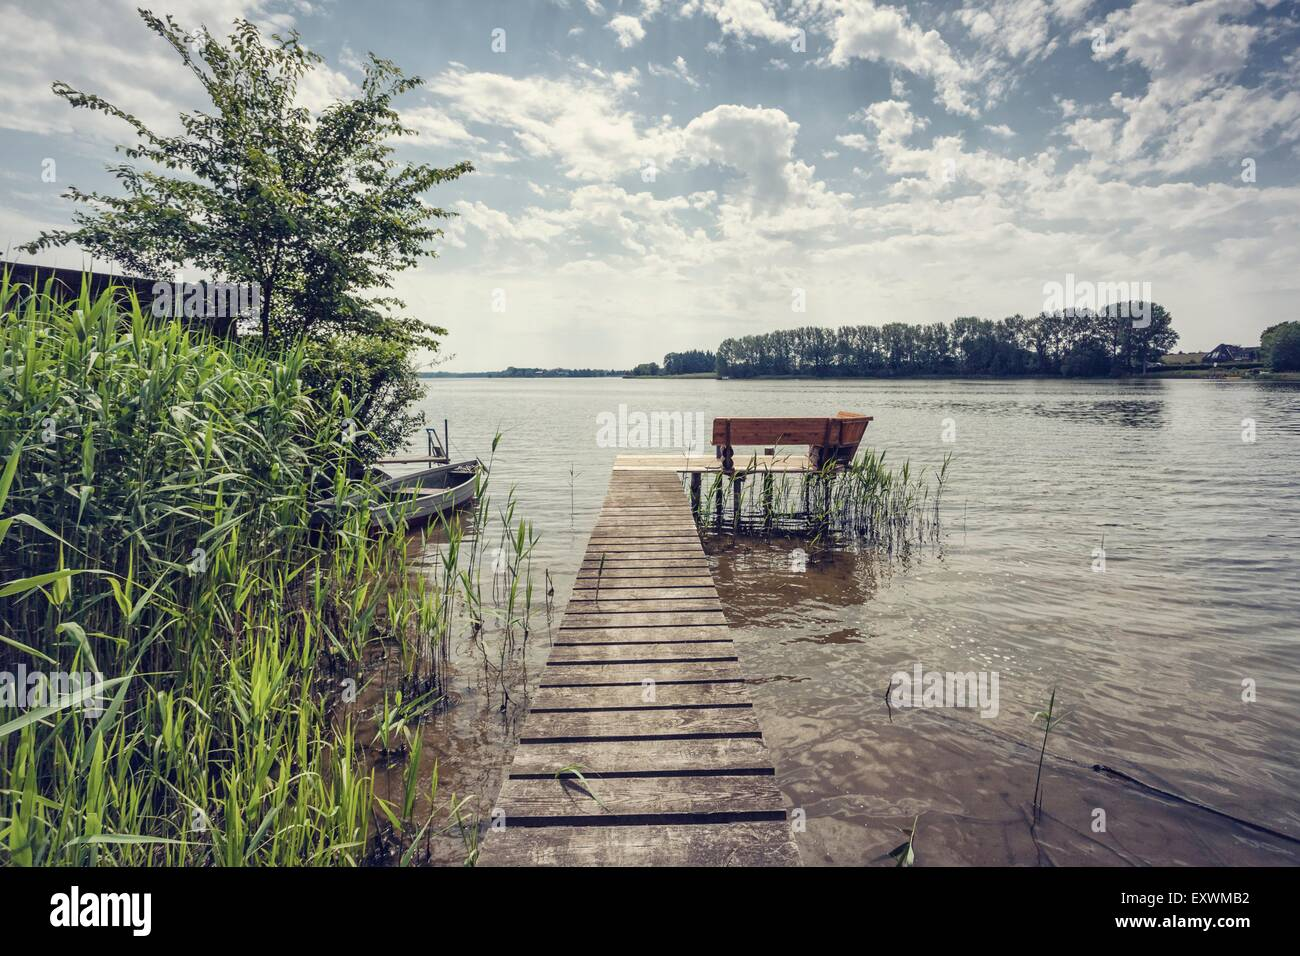 Shore of Passader See, Schleswig-Holstein, Germany - Stock Image